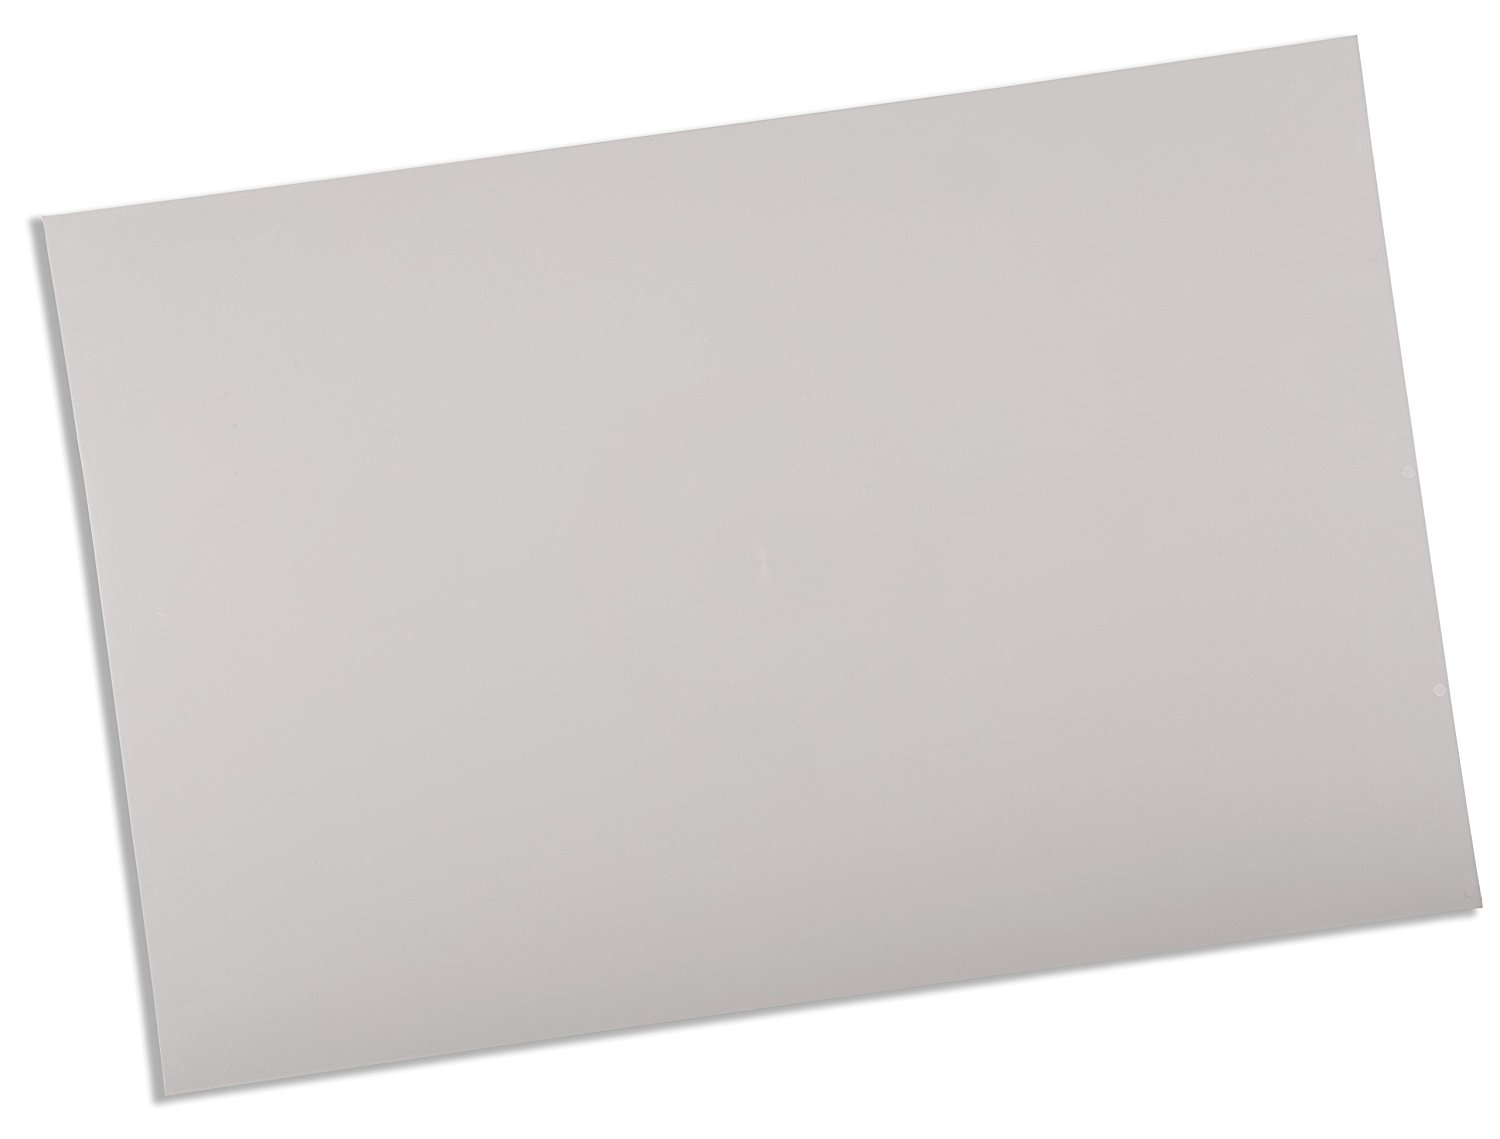 Rolyan Splinting Material Sheets, Ezeform, White, 1/8'' x 24'' x 36'', Solid, 2 Sheets by Cedarburg